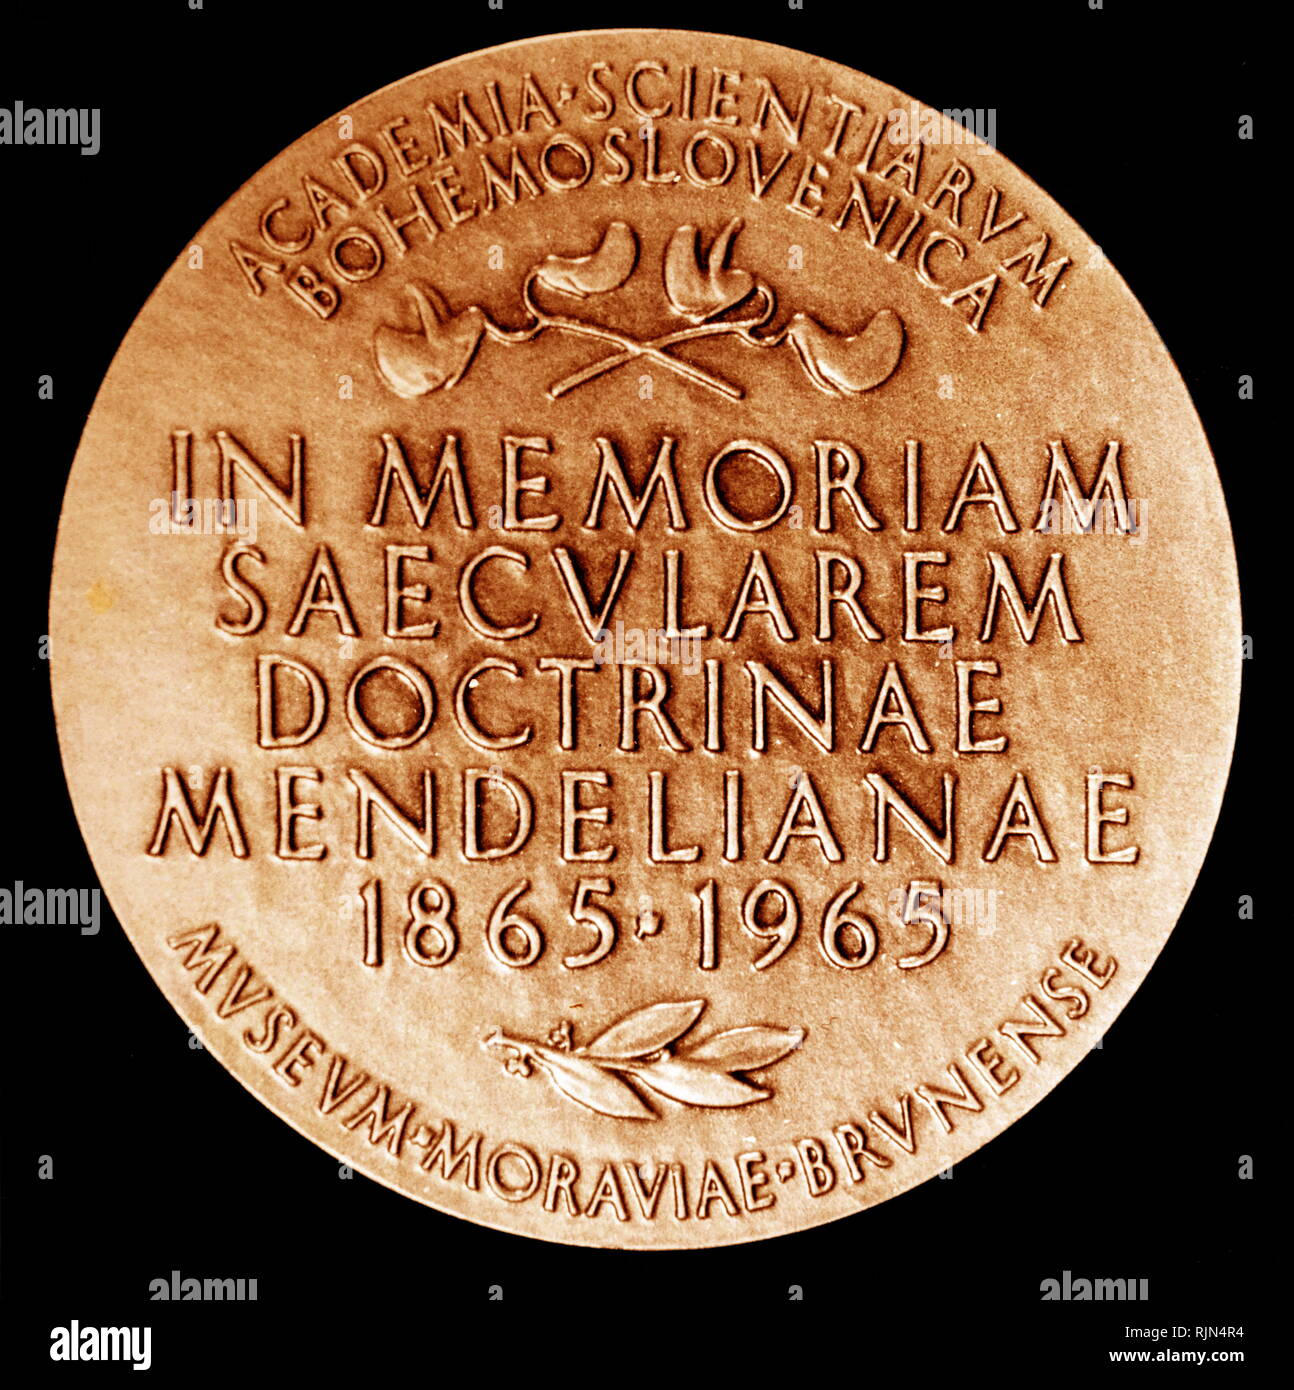 GREGOR JOHANN MENDEL (1822-1884) botanist; Reverse of a medal issued in 1965, to commemorate the centenary of the publication of the hybridization of peas - Stock Image